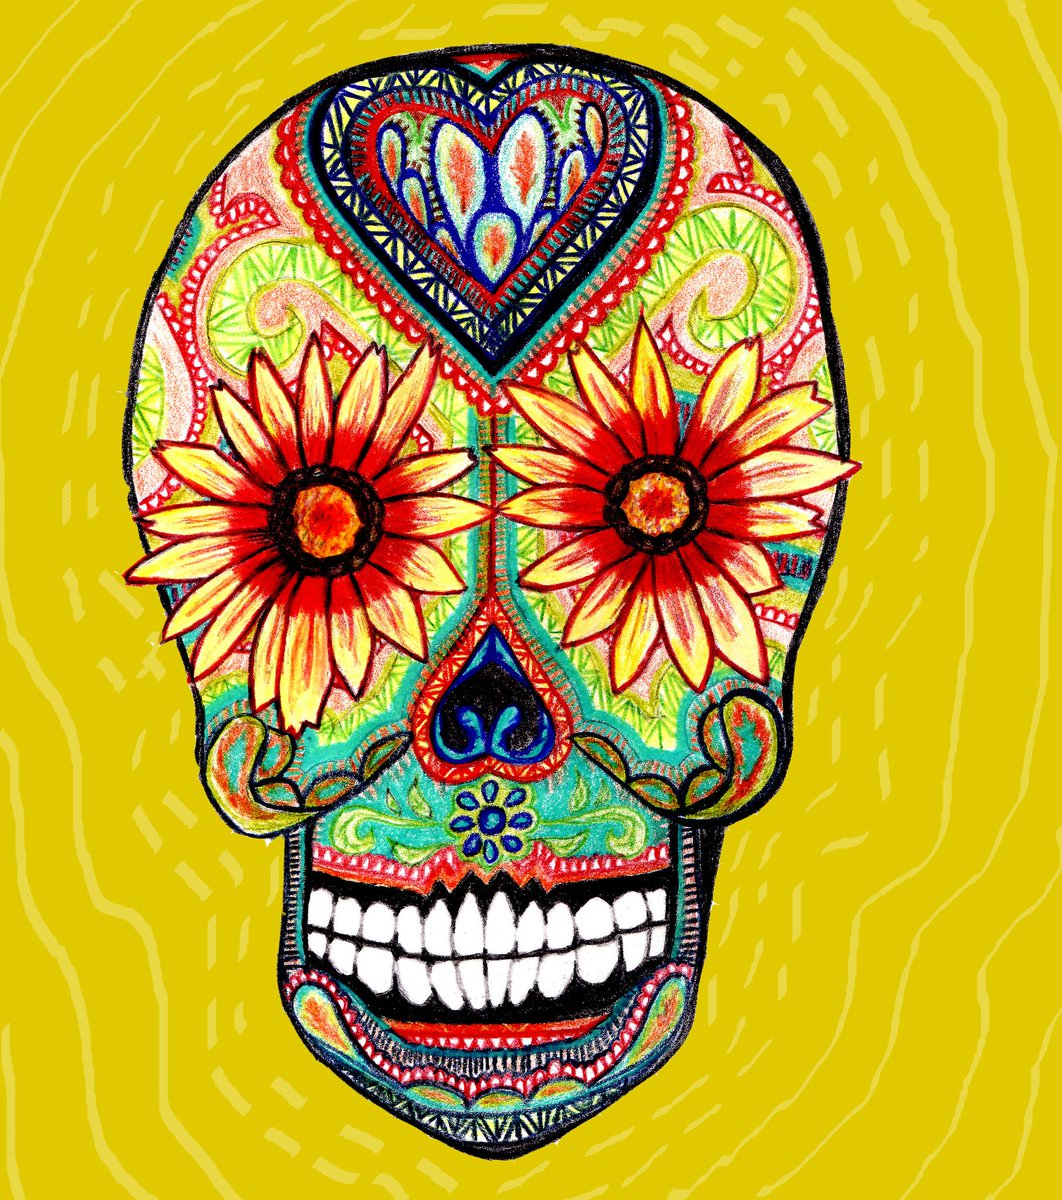 #dayofthedead  //  PHOTO: https://t.co/6Q9x9VVm3W https://t.co/sz9whLusYZ